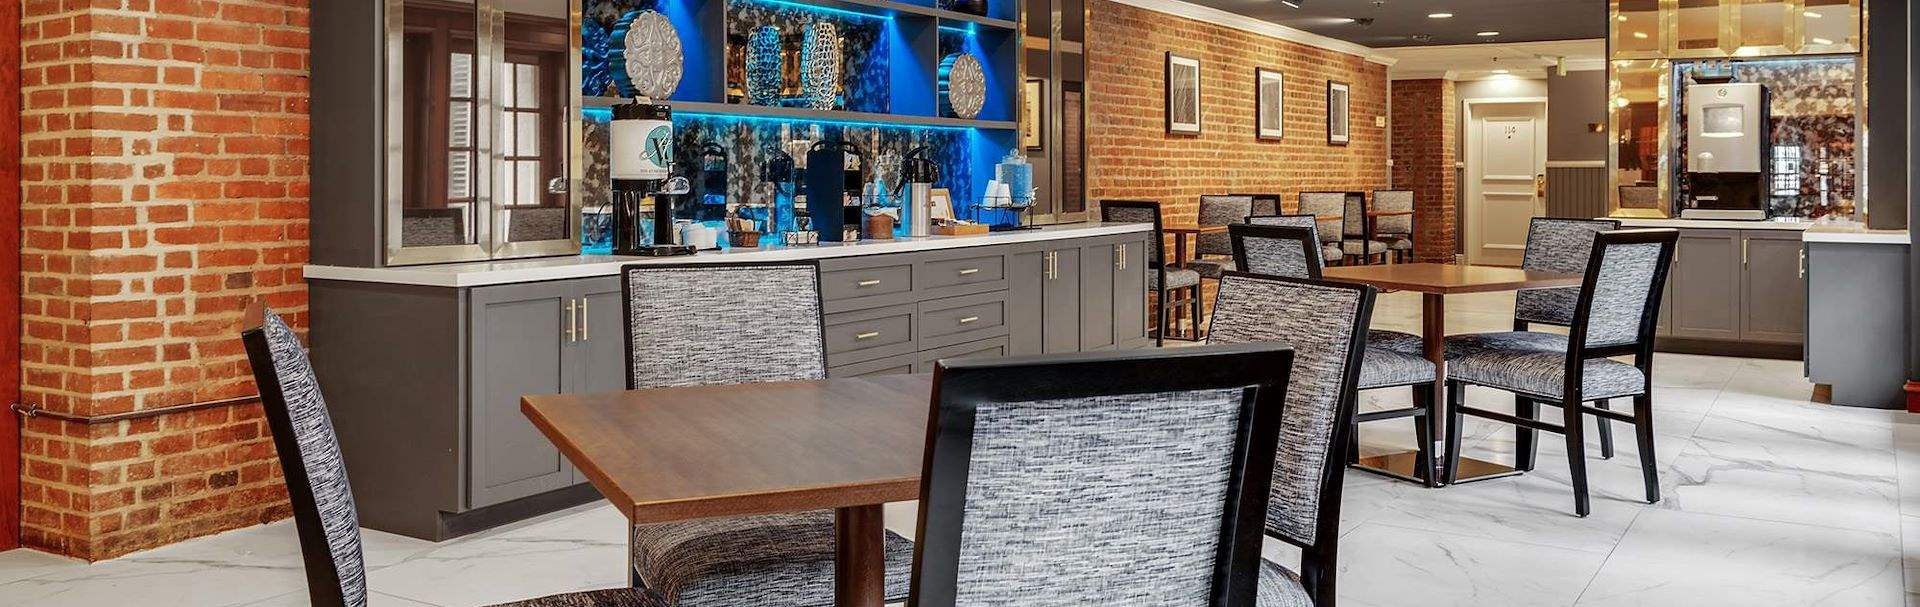 Services + Amenities at Inn at Henderson's Wharf Baltimore Maryland